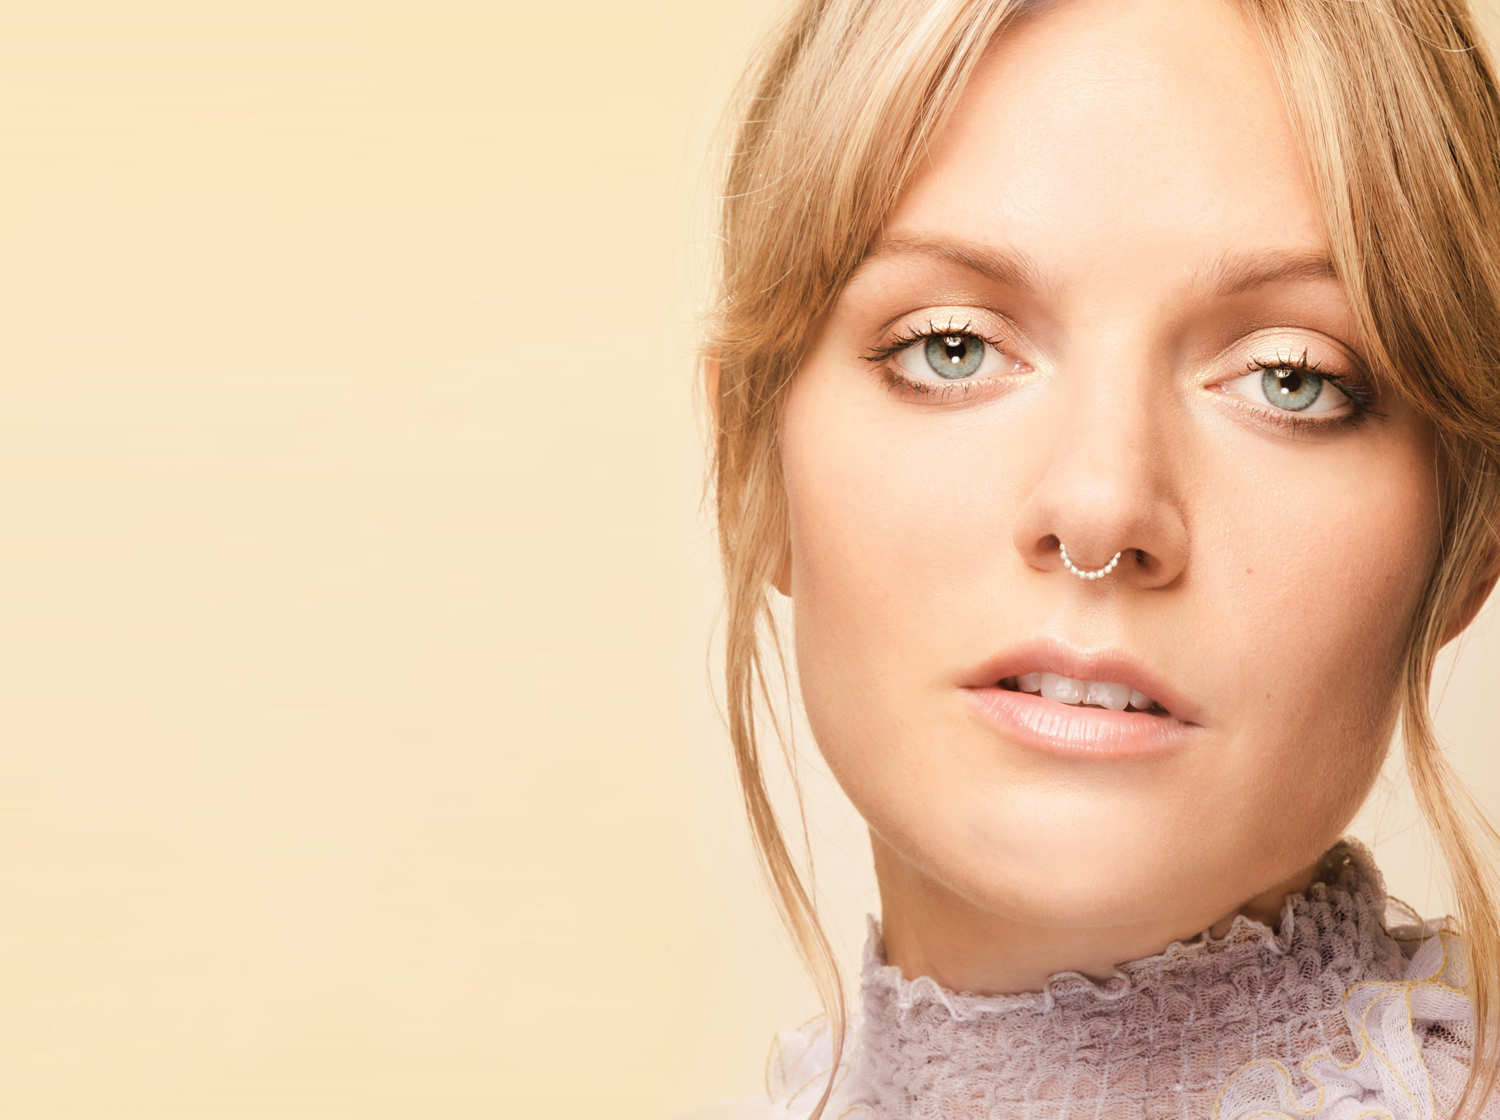 It's about time you learned Tove Lo's name.